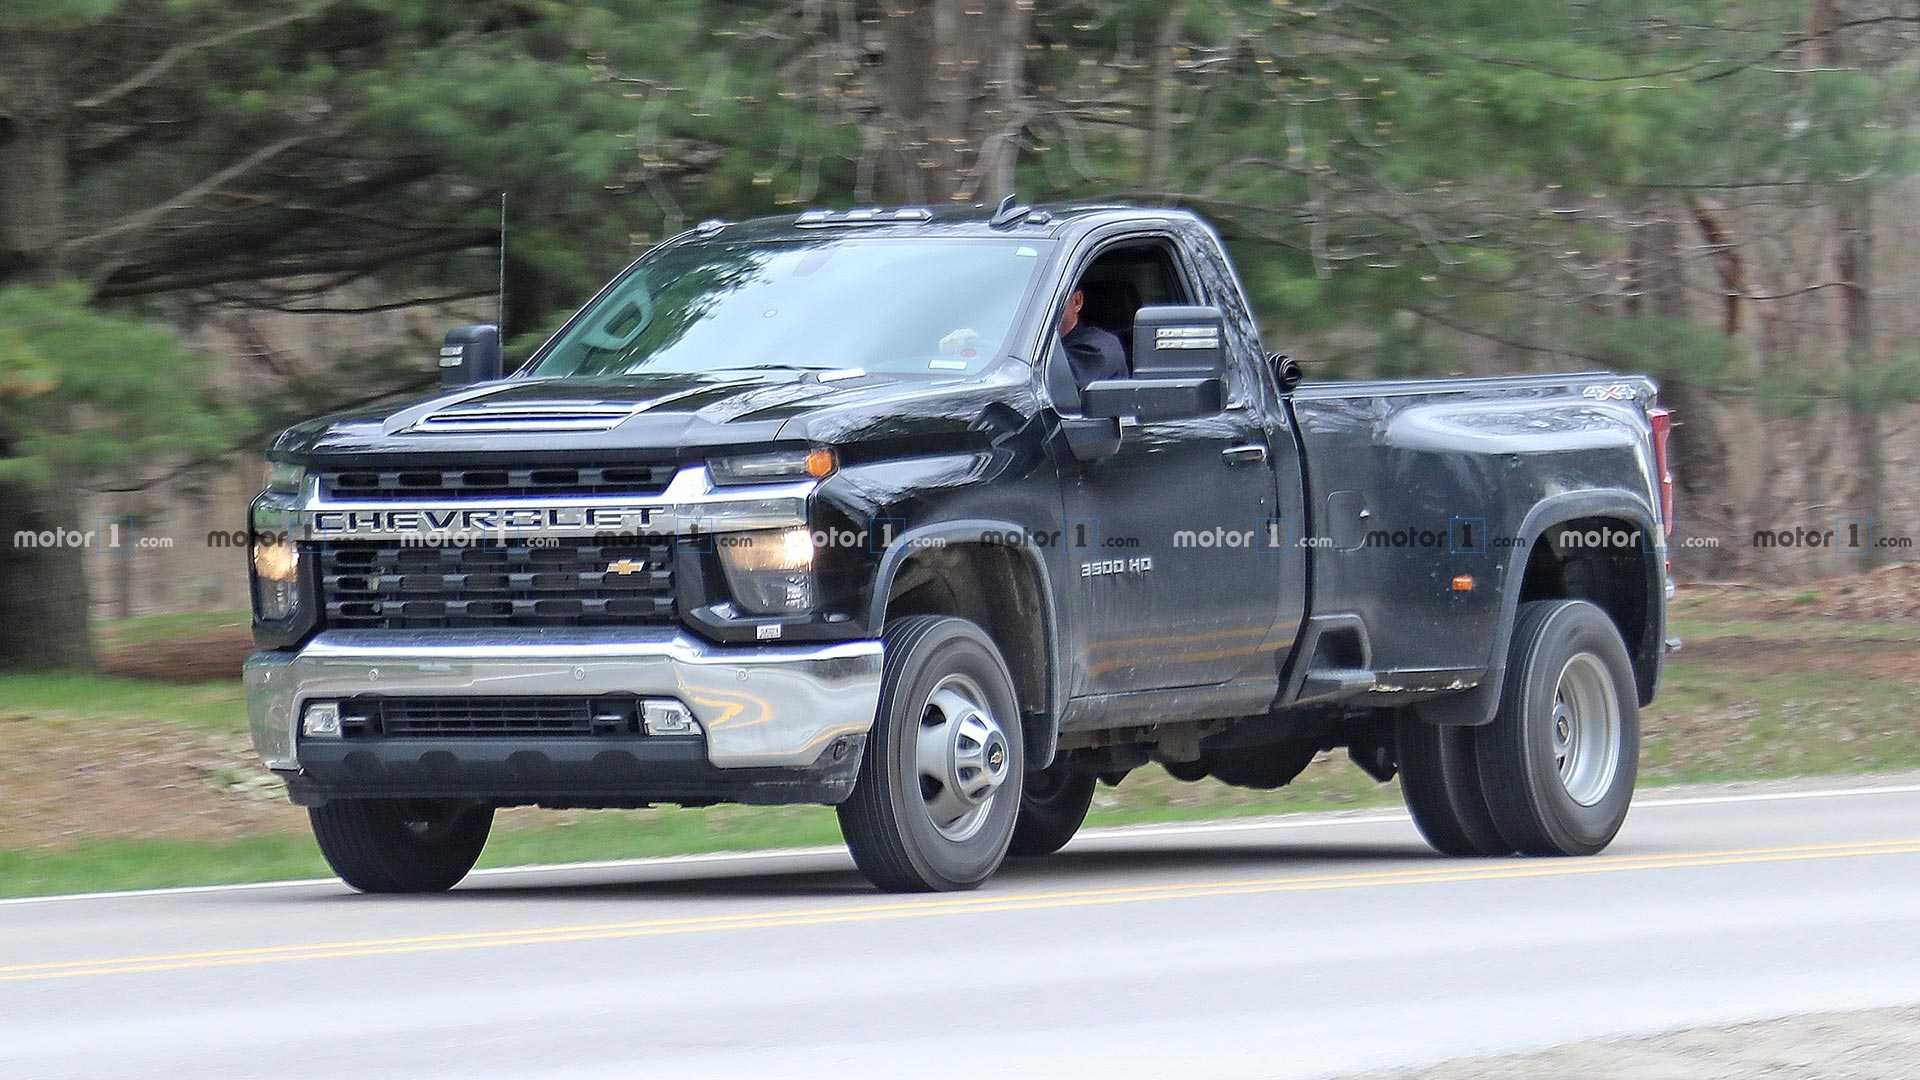 14 New 2020 Chevrolet 3500 For Sale Engine by 2020 Chevrolet 3500 For Sale